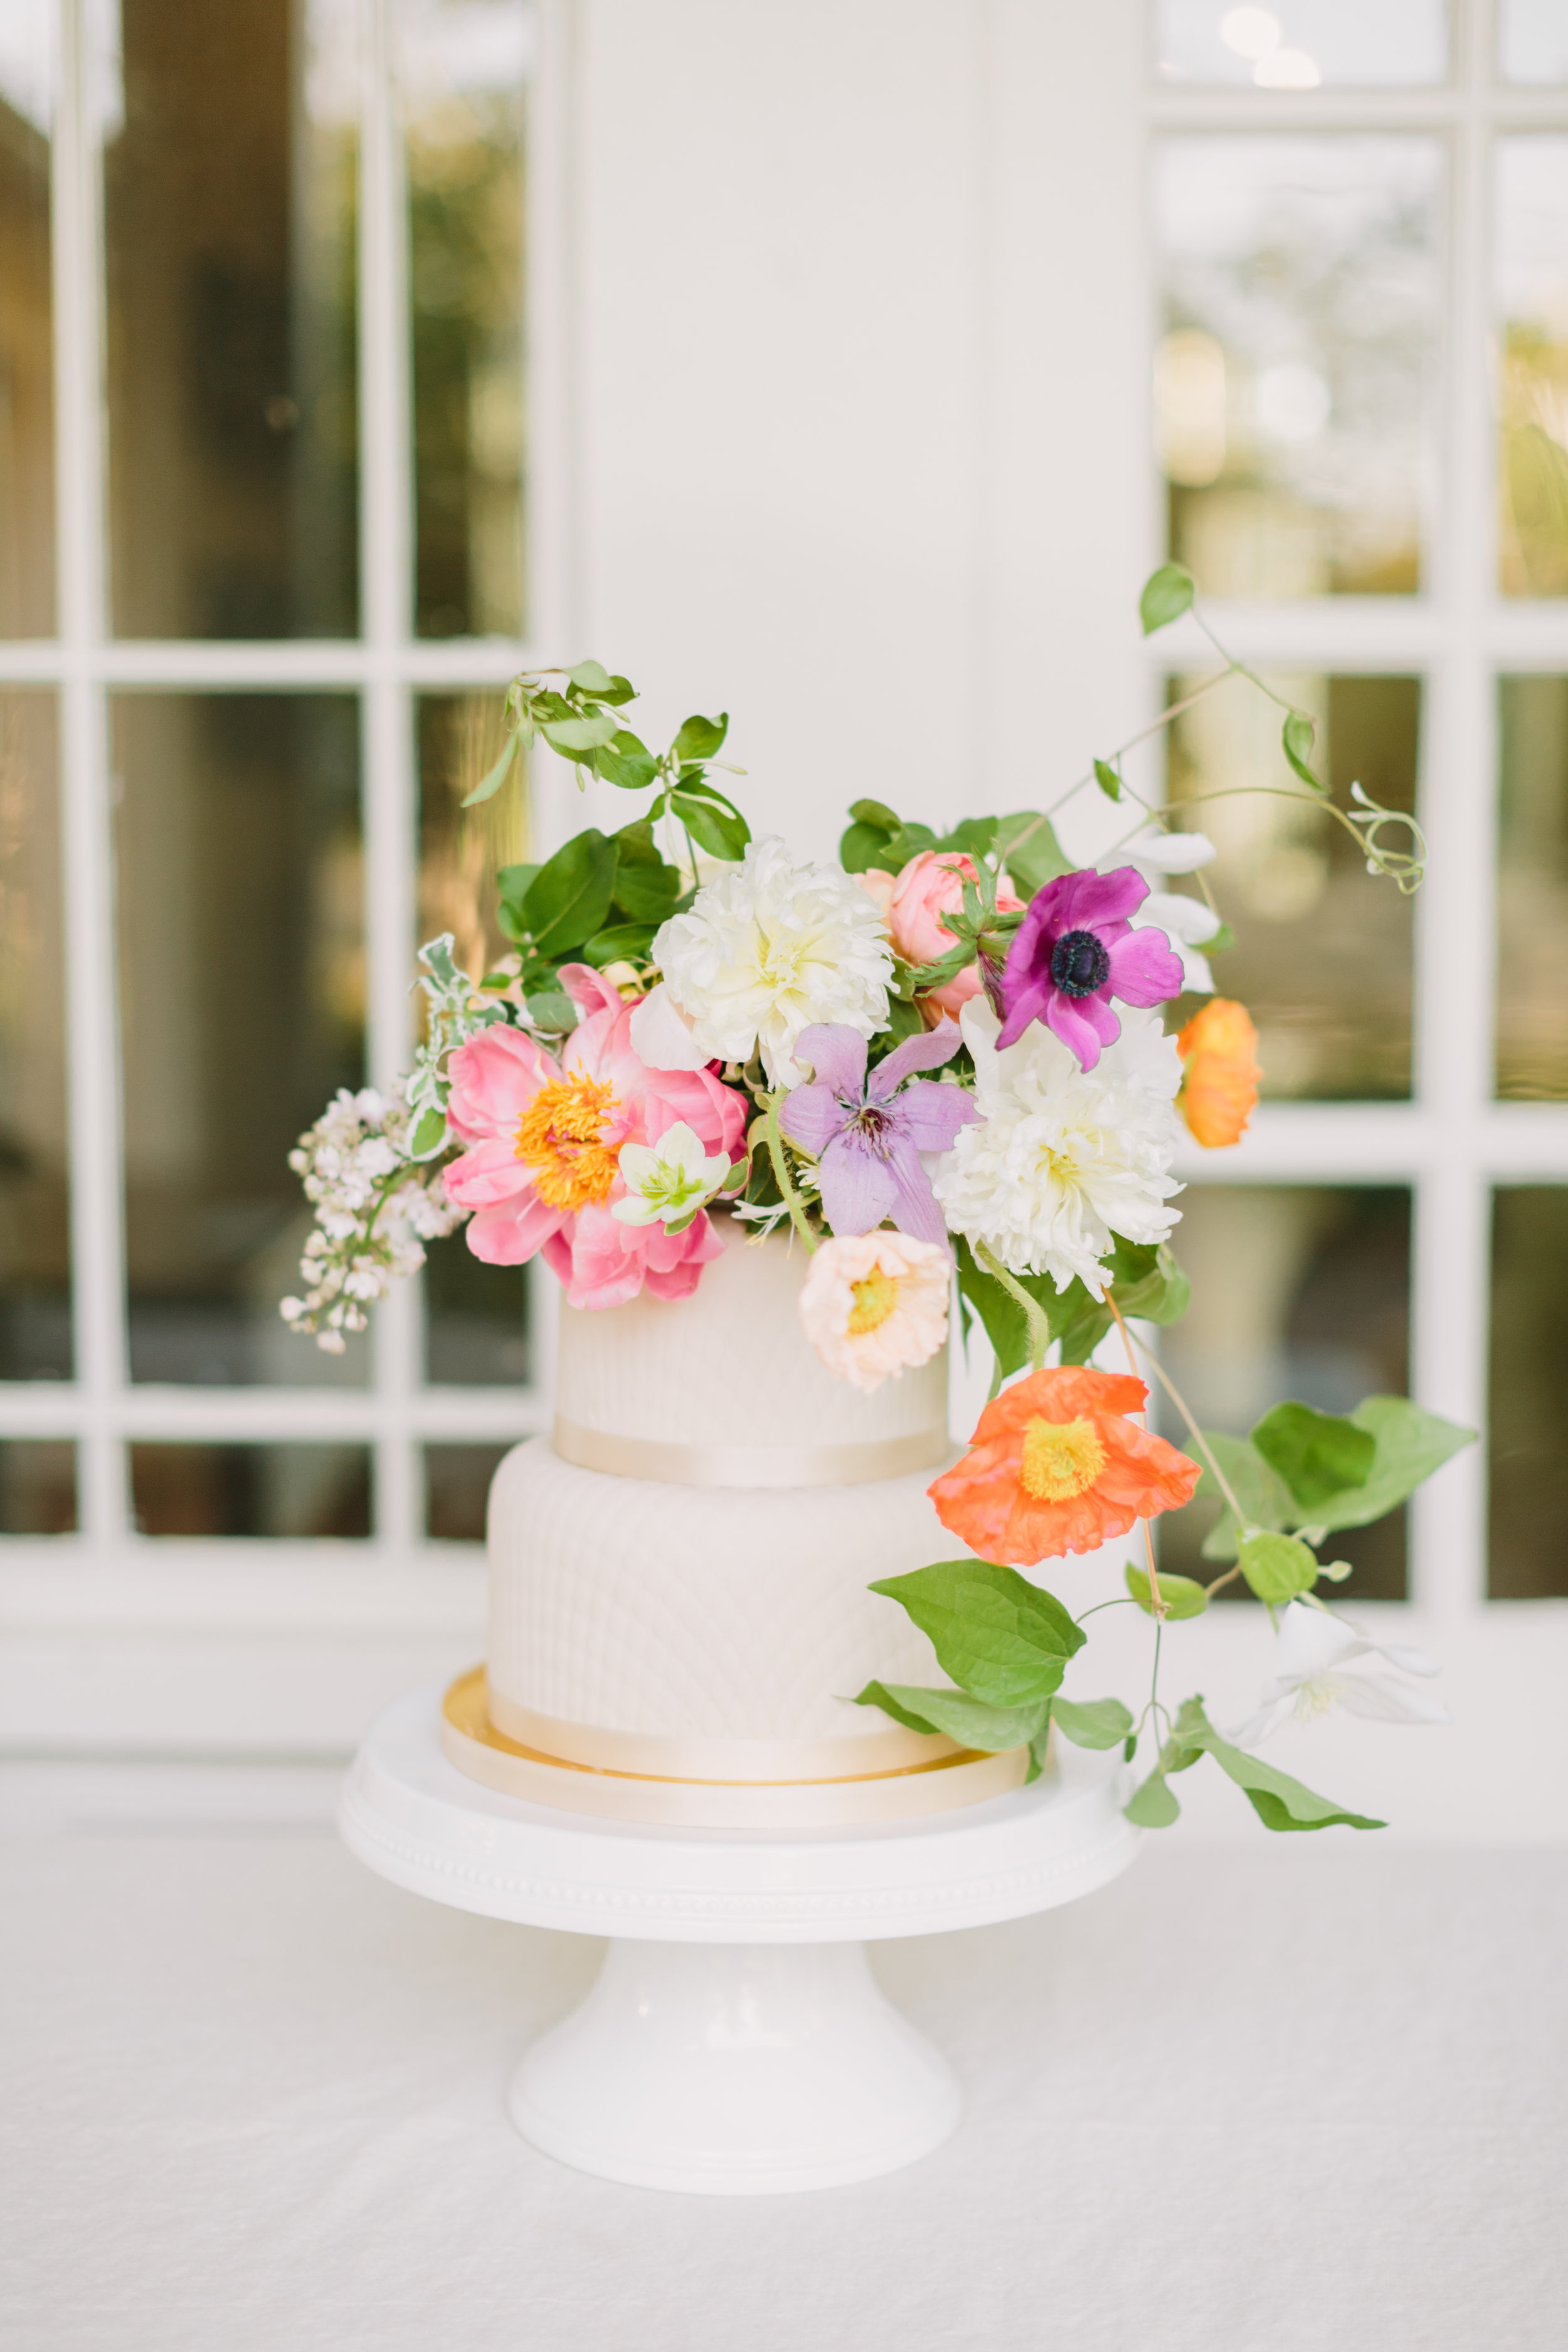 jessica-zimmerman-events-wedding-arkansas-education-summer-color-cake.JPG